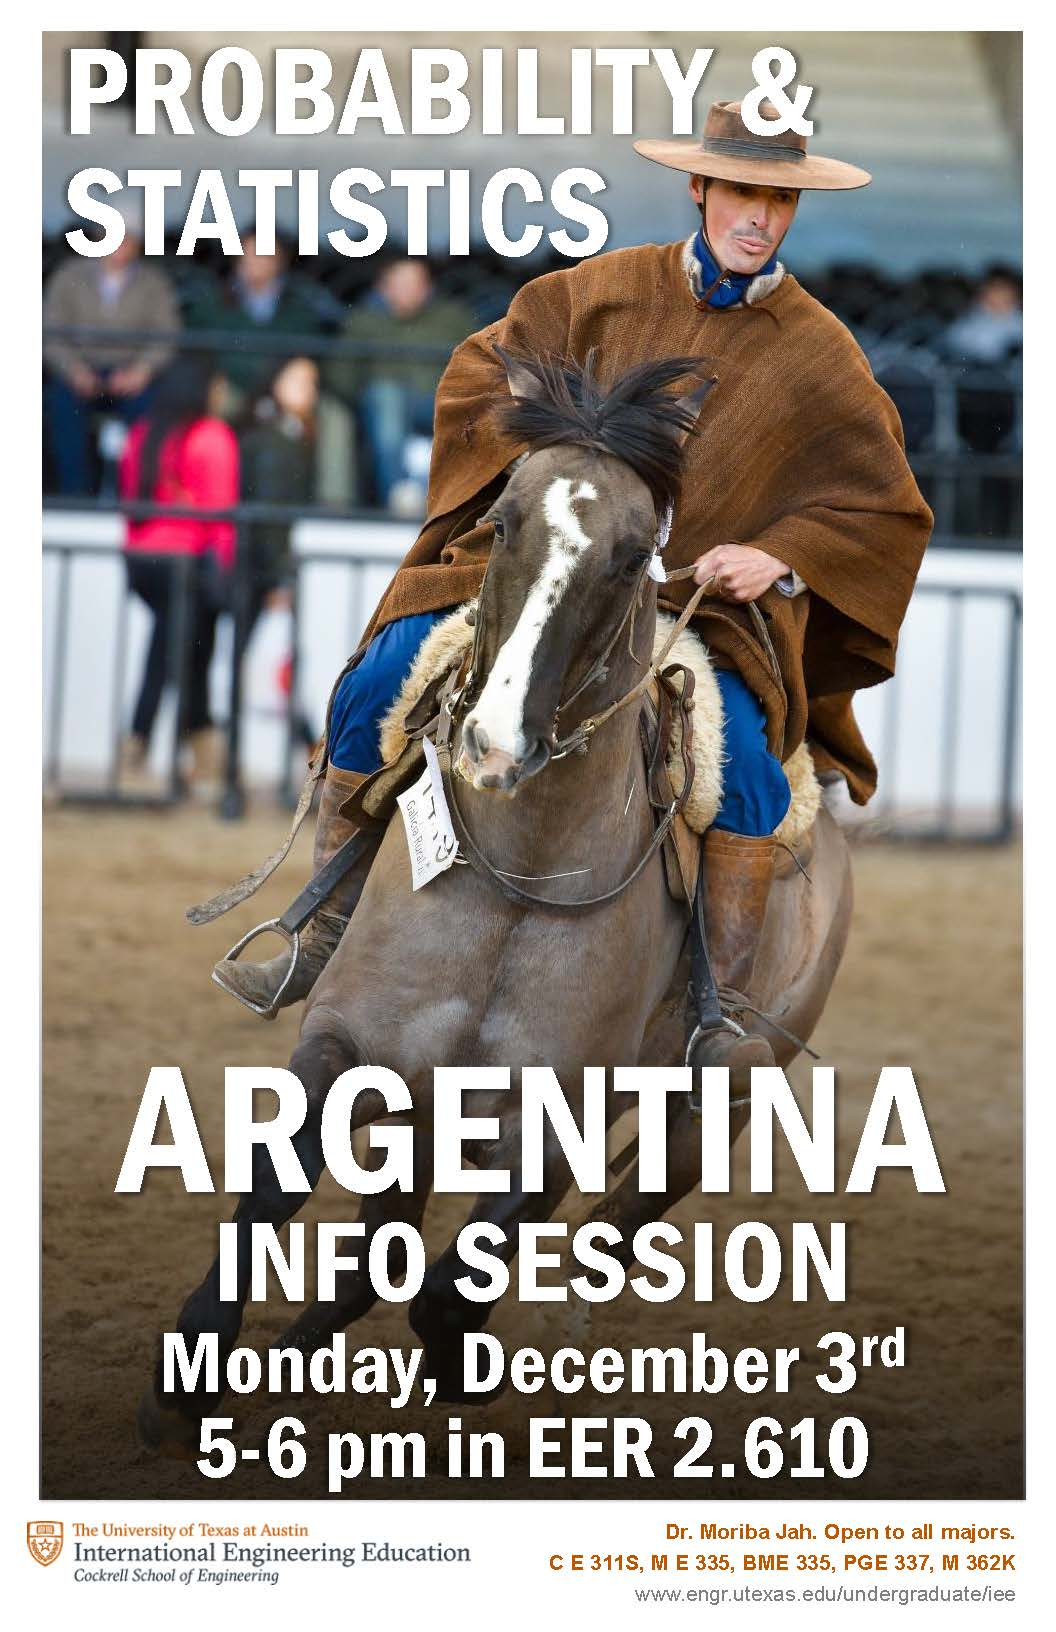 Probability & Statistics Argentina Info Session on 12/3